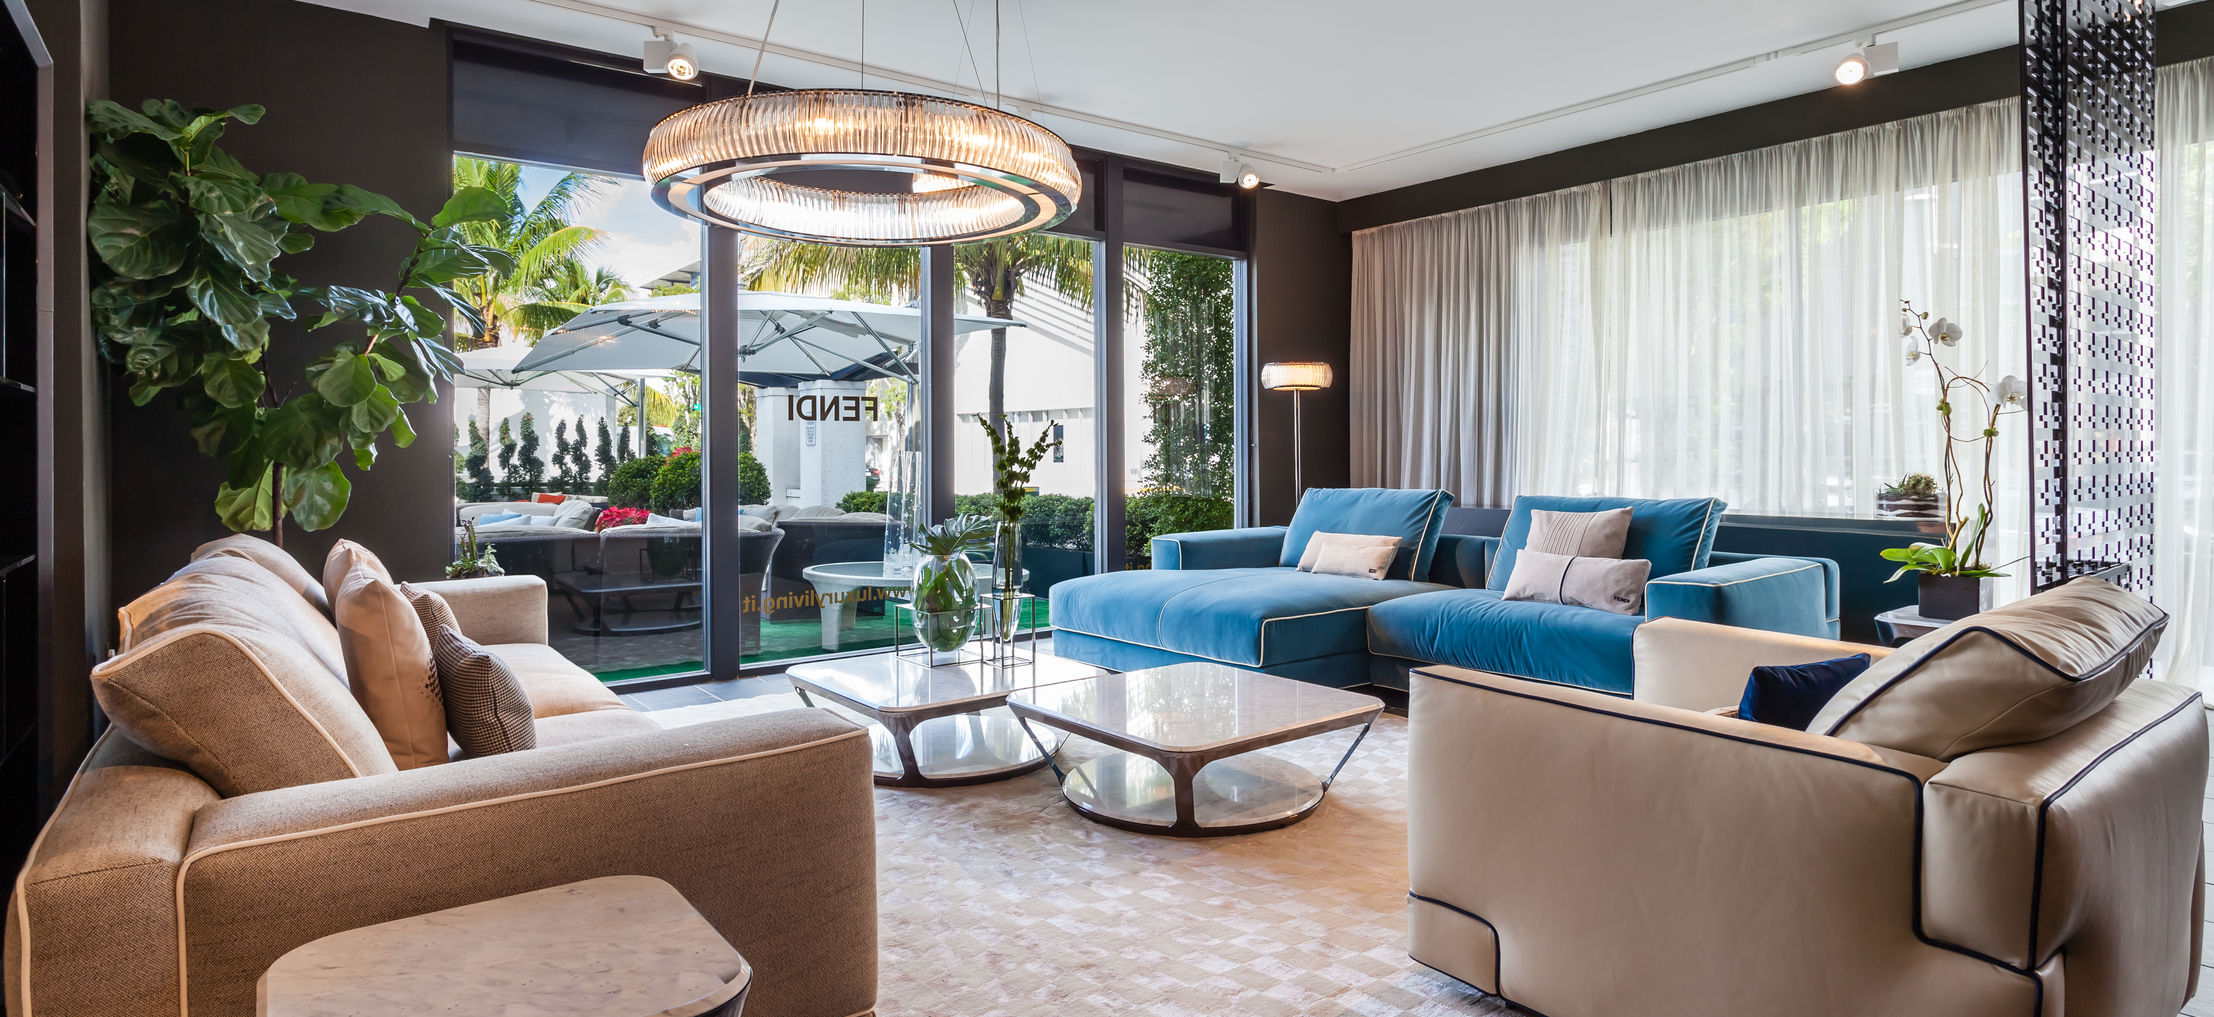 The Best Places To Shop For Chic Home Dcor In South